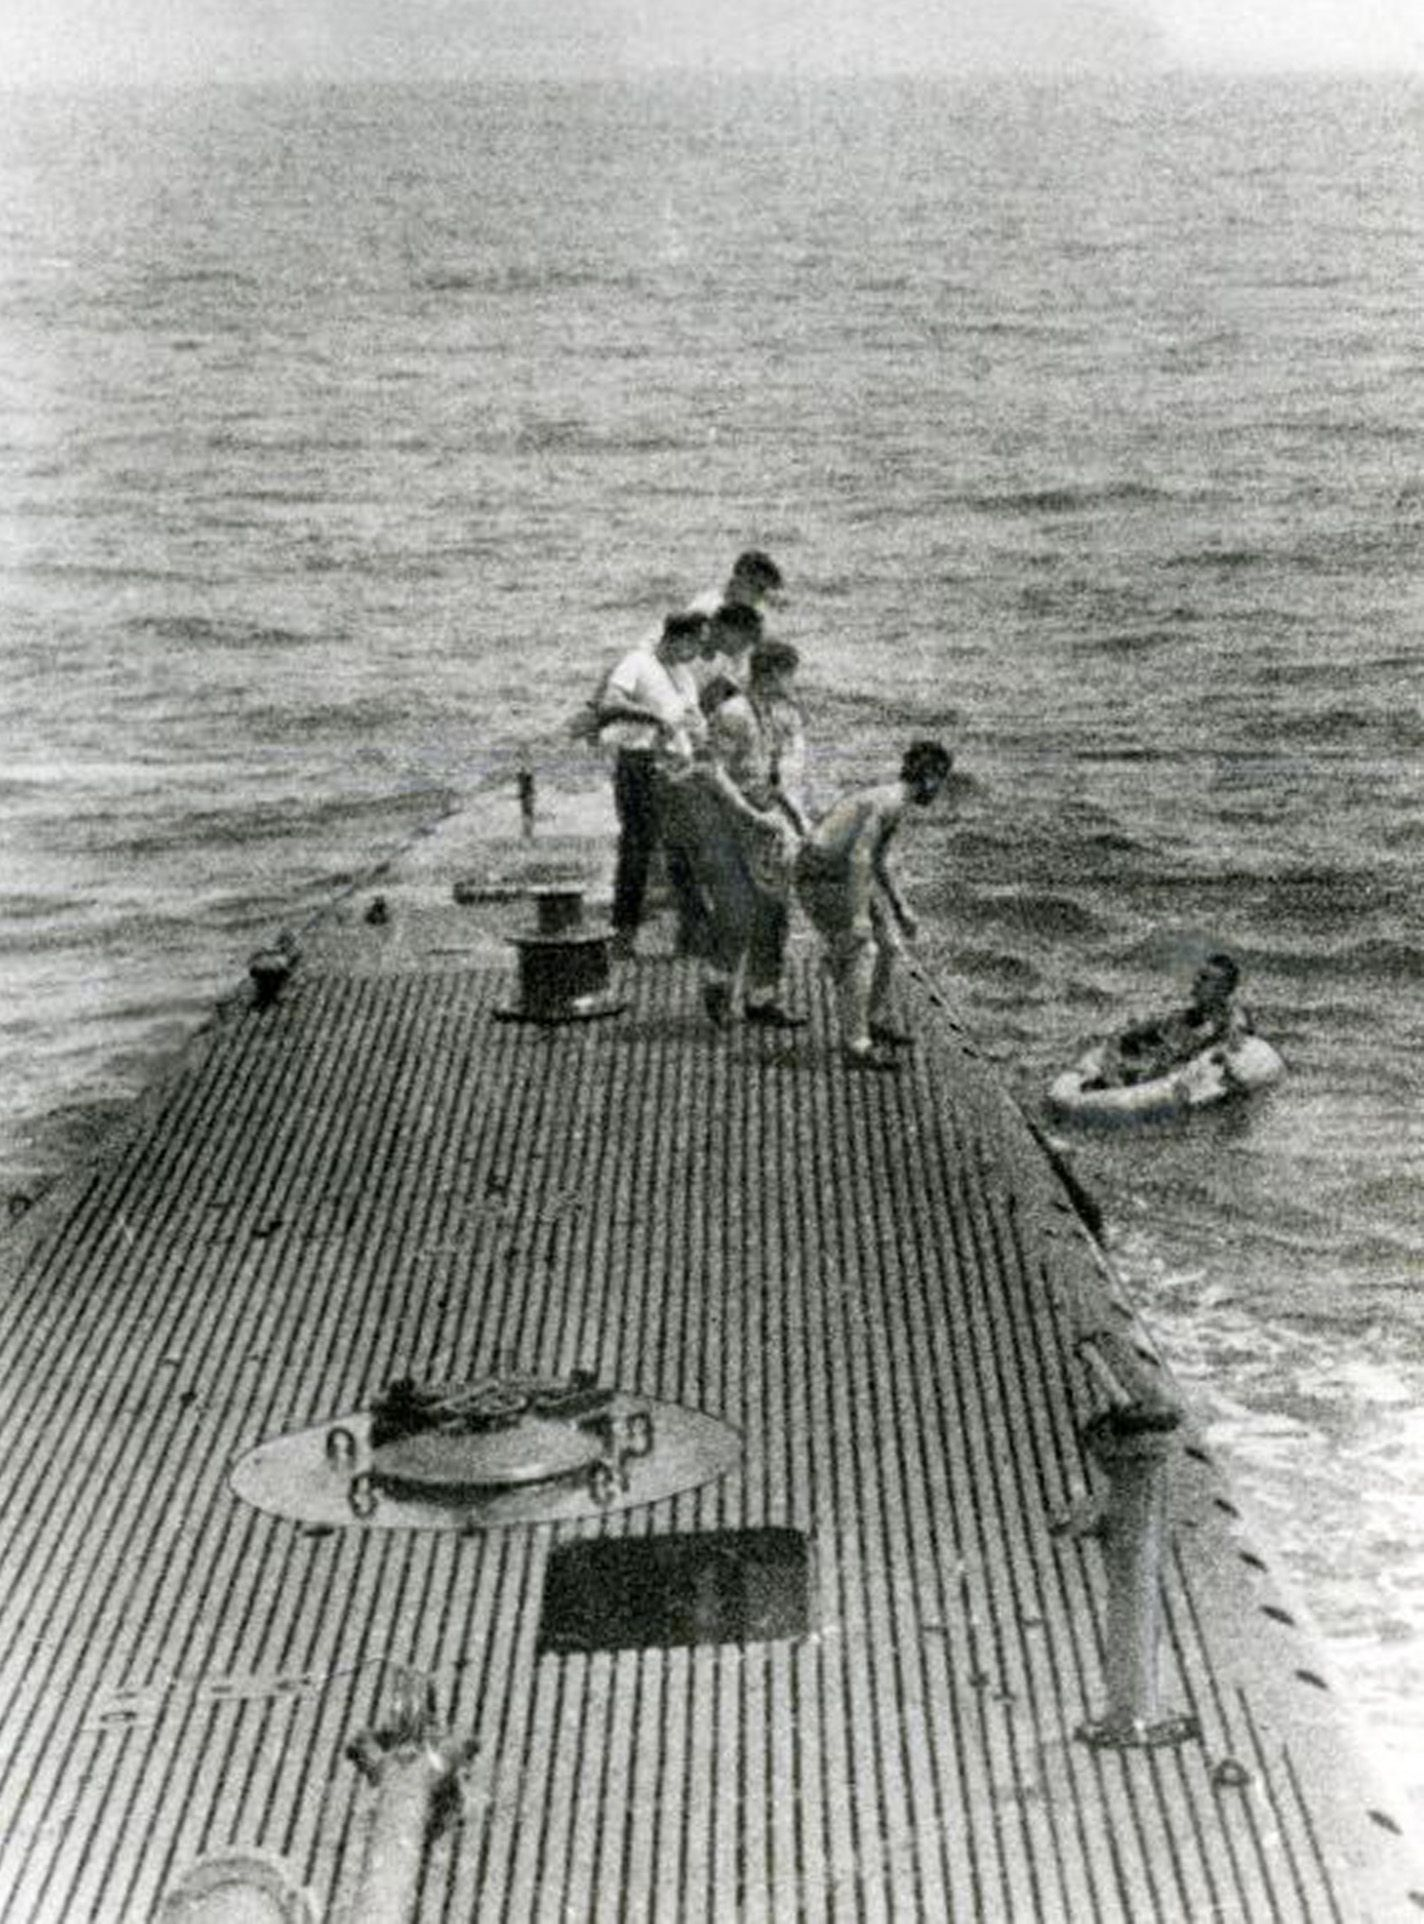 1944: Navy pilot George Bush (right) is pulled from the ocean by sailors onboard the Navy submarine USS Finback. After his plane was downed, he survived for hours in a small raft.